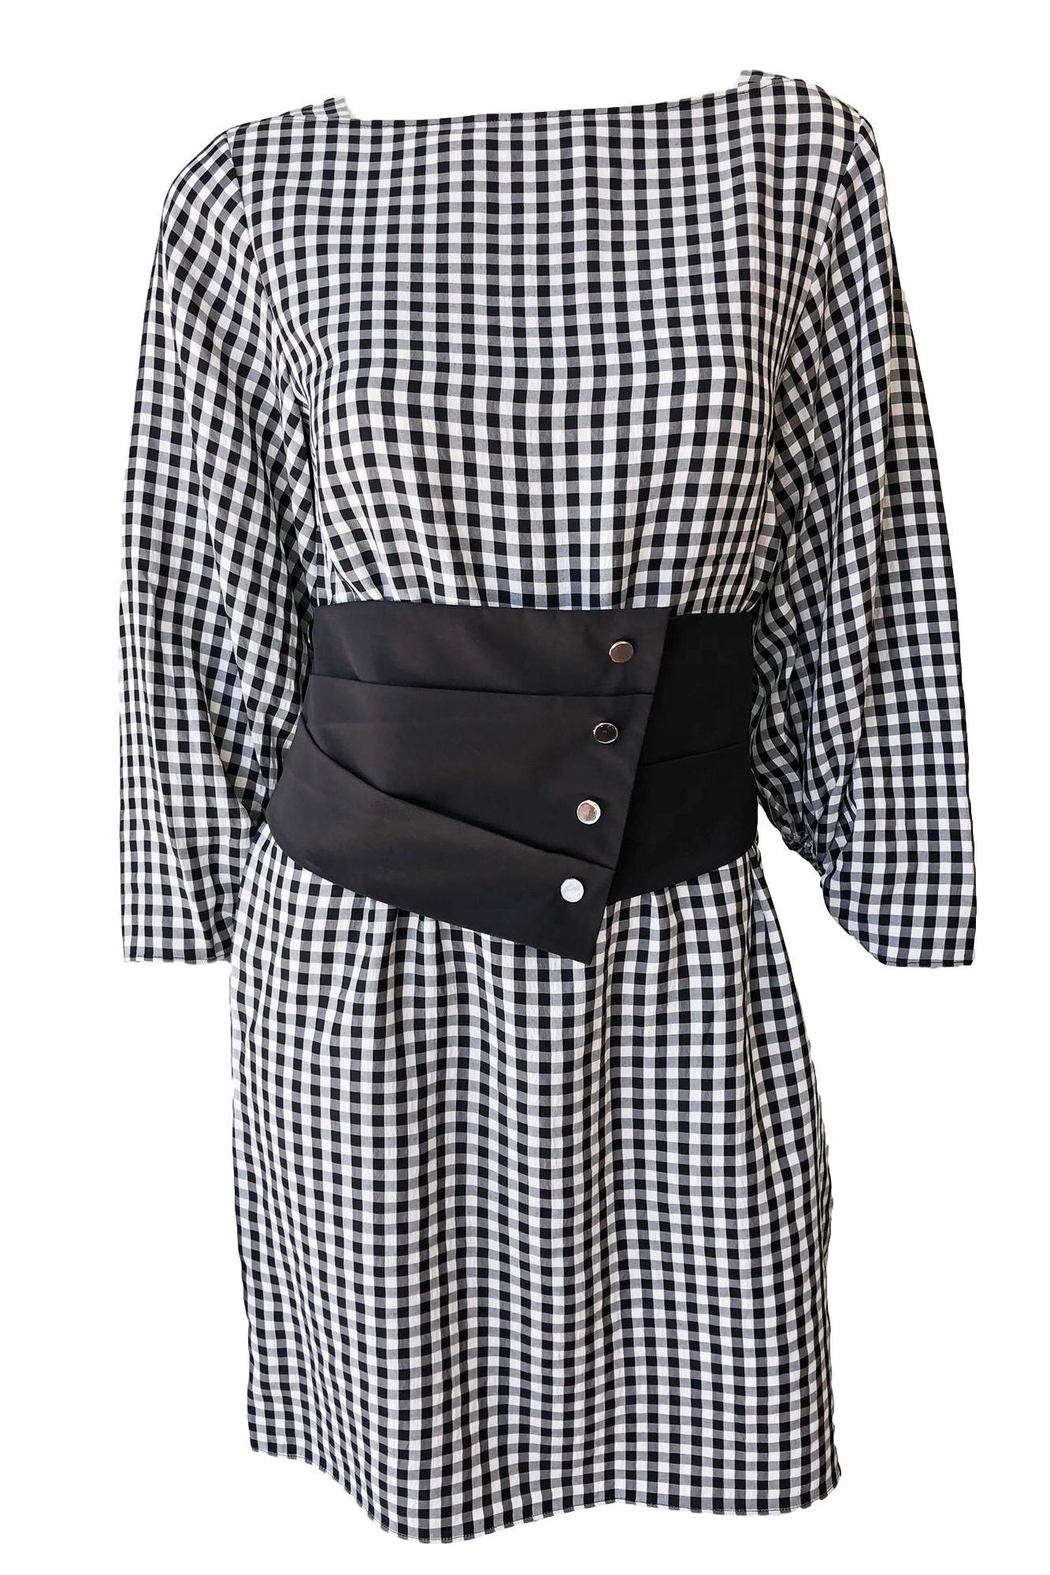 Tibi Viscose Gingham Dress - Main Image